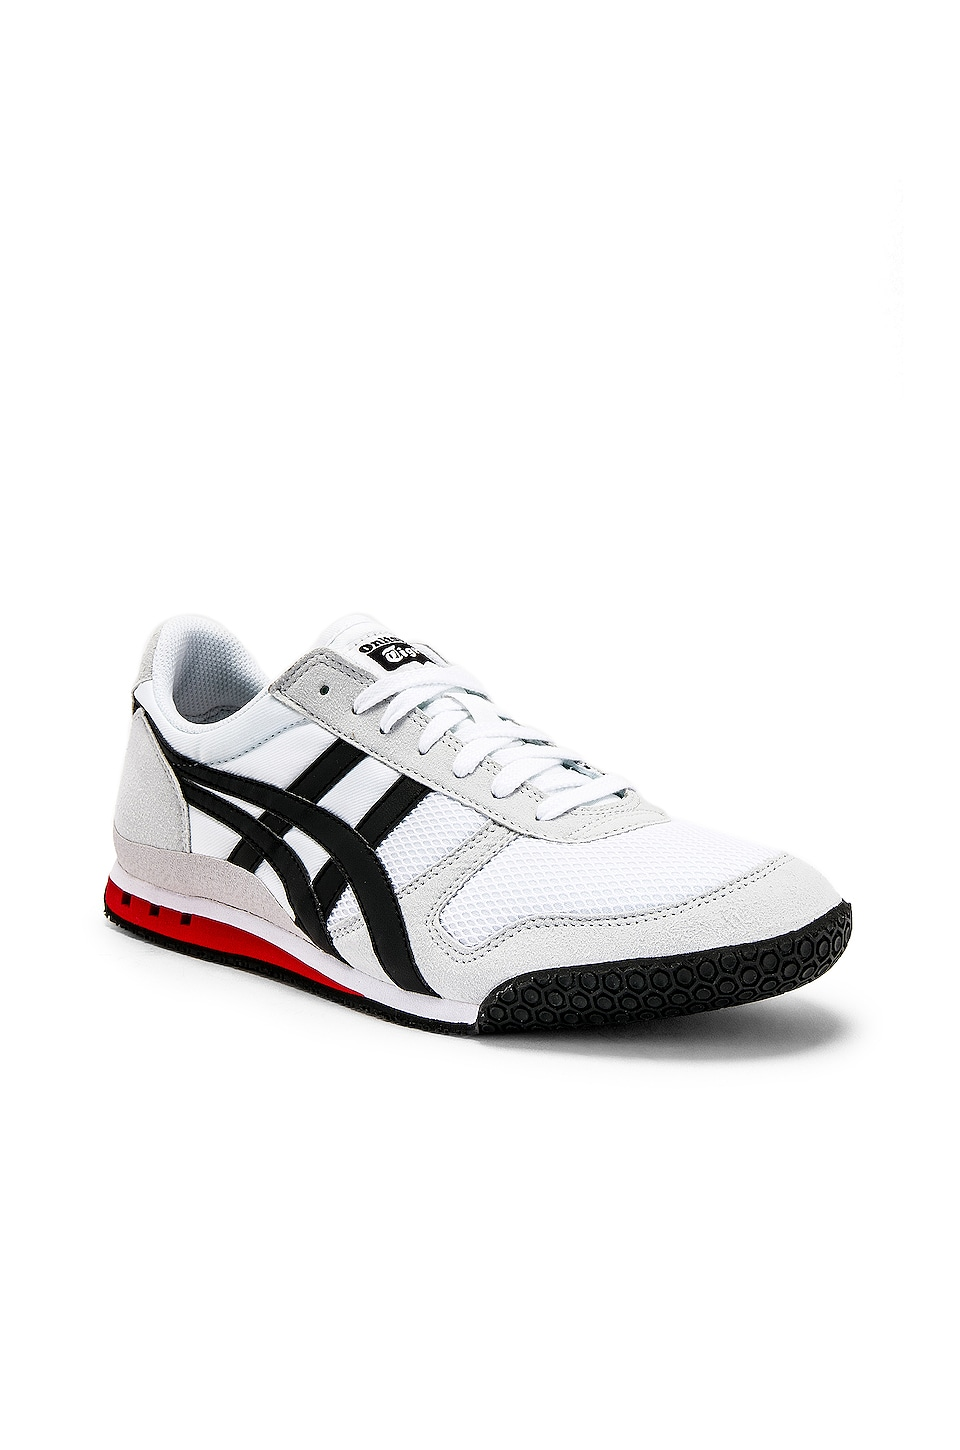 Onitsuka Tiger Ultimate 81 in White & Black